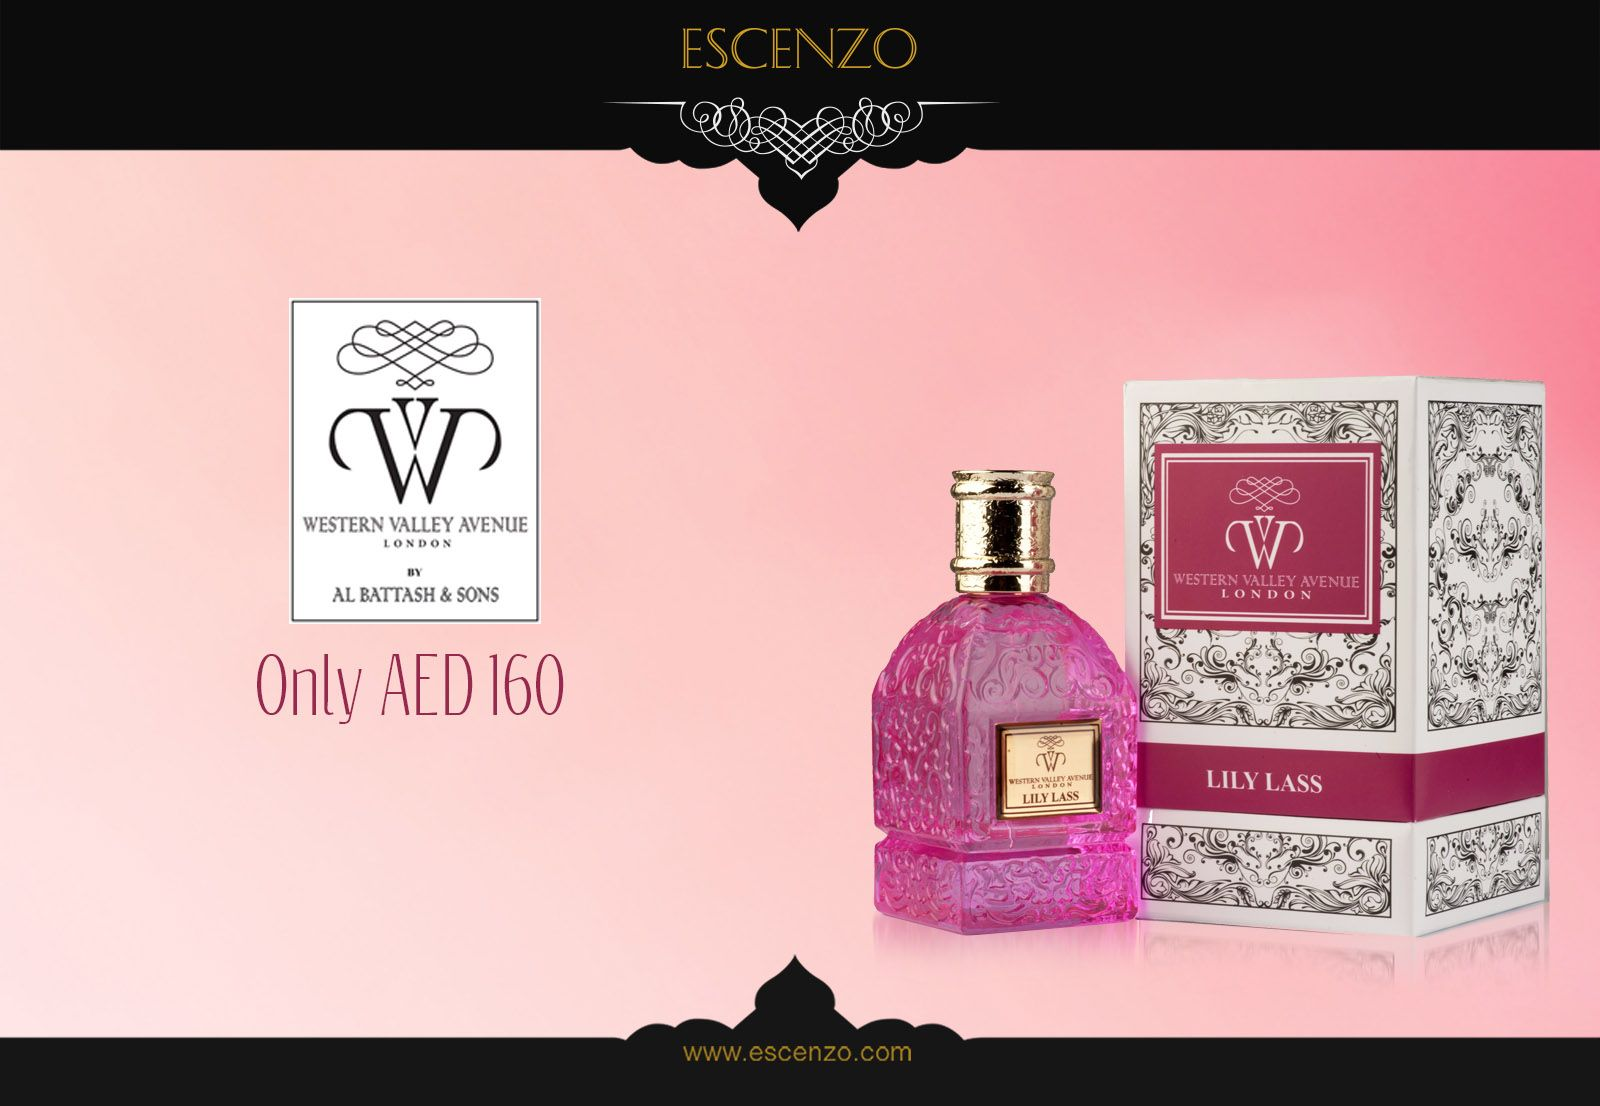 Get Western Valley Lily Lass for women on our price 160 AED. Order: https://escenzo.com/en/western-valley-avenue-london/western-valley-lily-lass-edp-75ml  إشتري عطر ويسترن فالي للمرأة بسعر 160 درهم إماراتي فقط إطلب الأن https://escenzo.com/en/western-valley-avenue-london/western-valley-lily-lass-edp-75ml